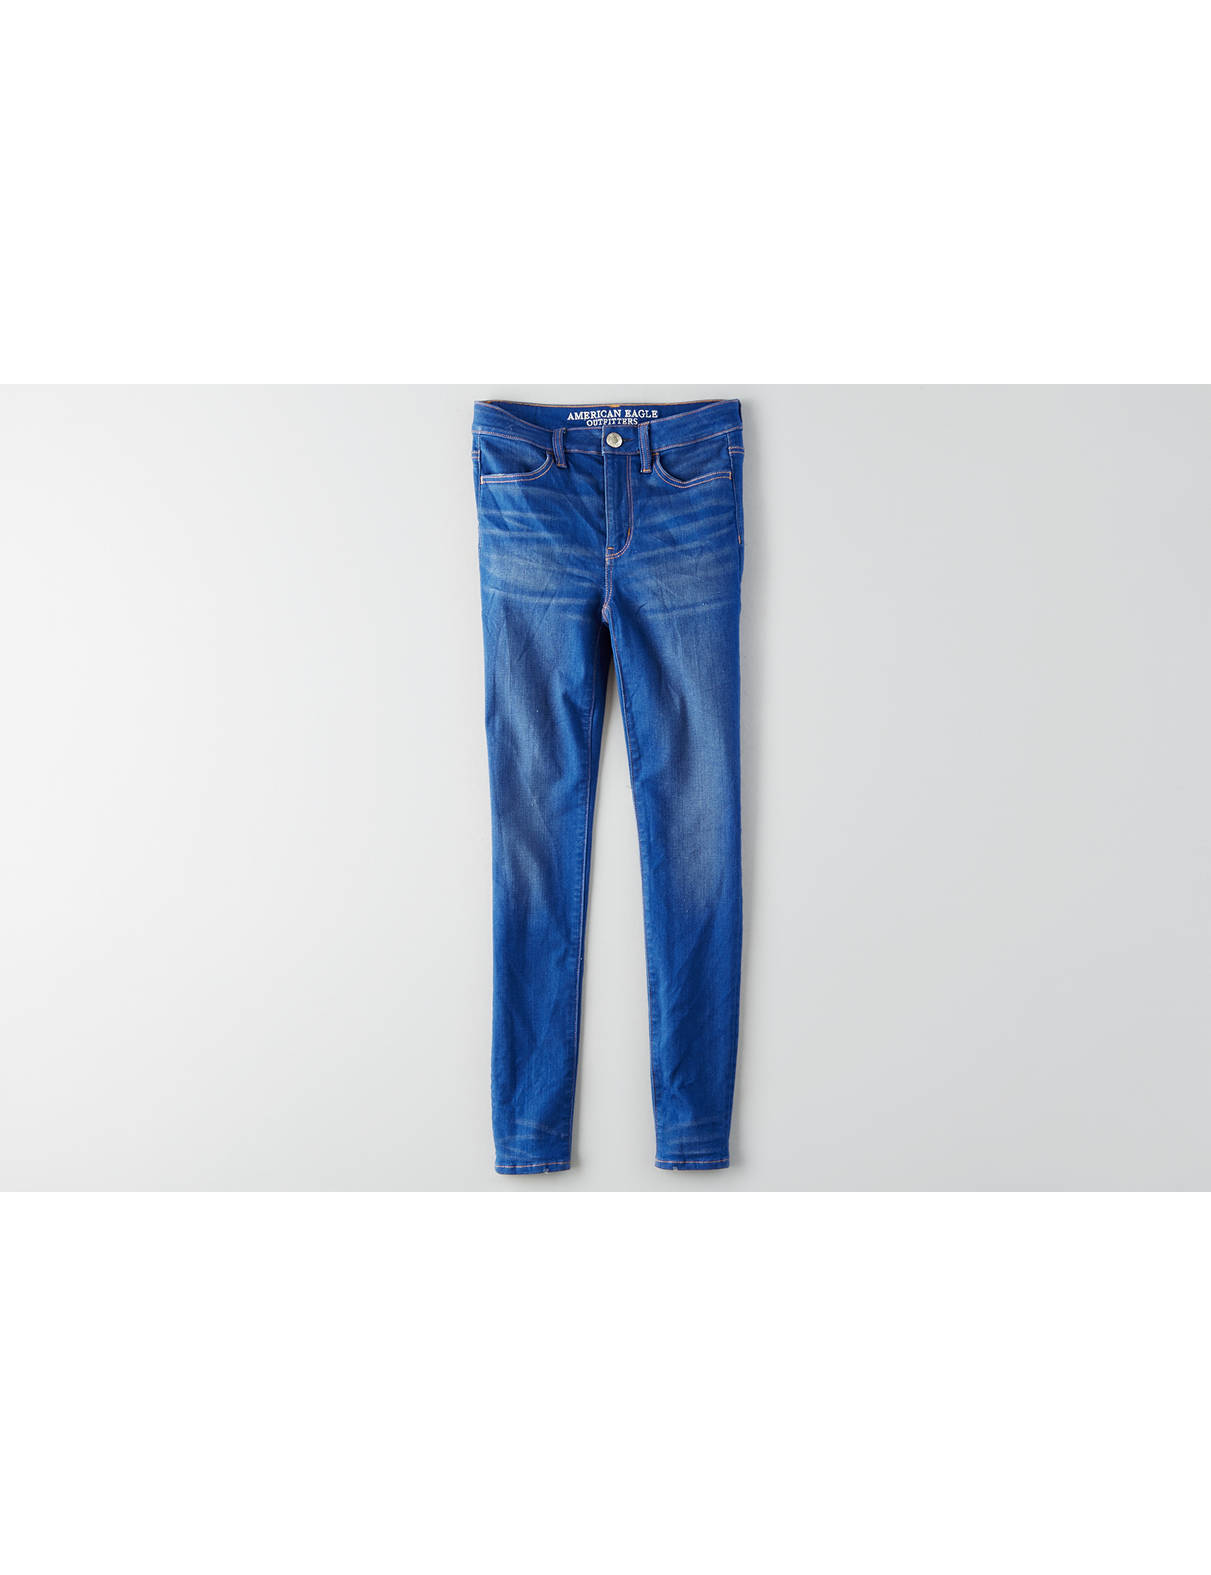 Jeggings   American Eagle Outfitters